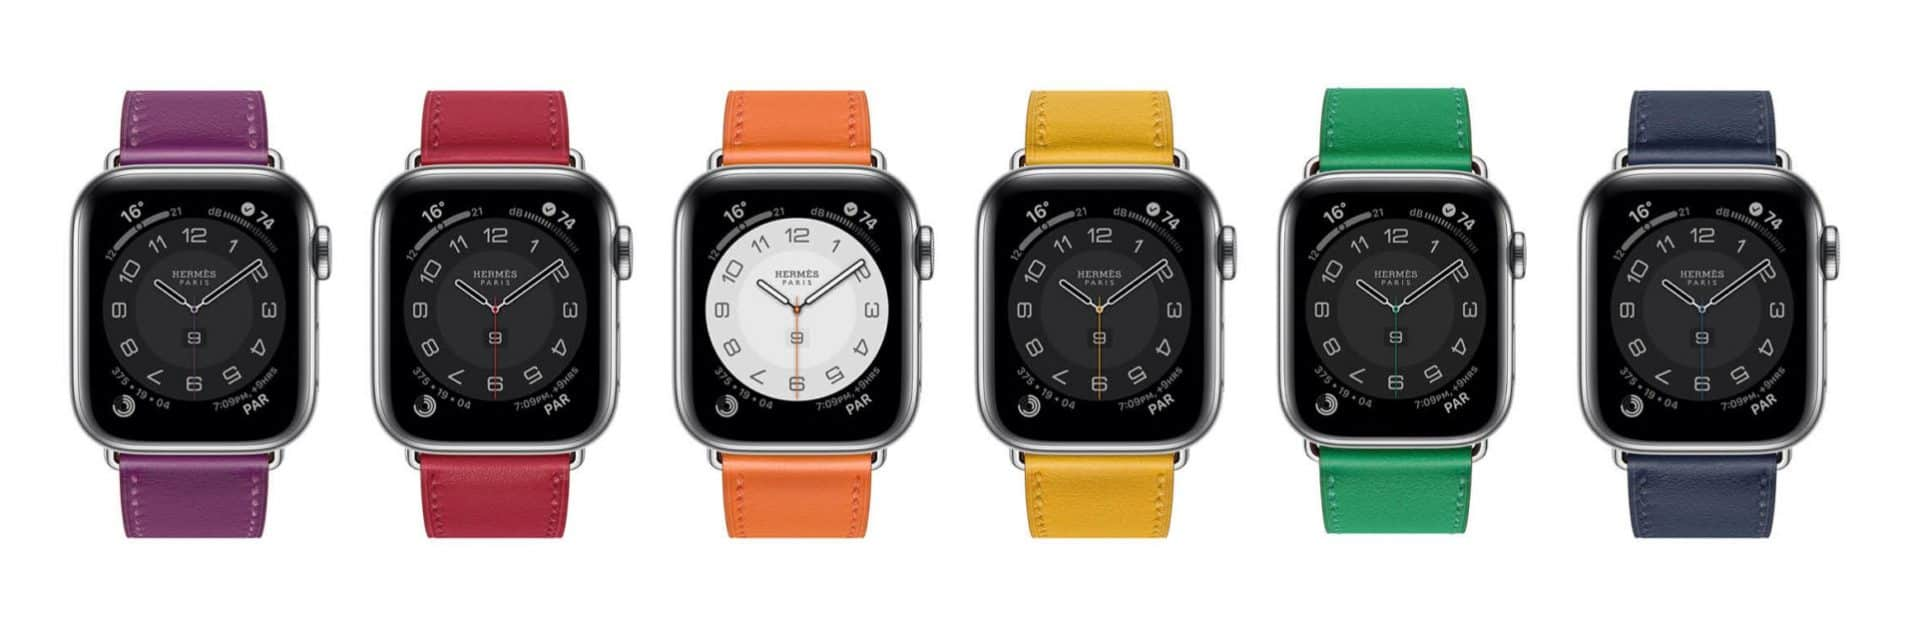 Apple watch hermes series 6 swift calfskin simple tour strap.